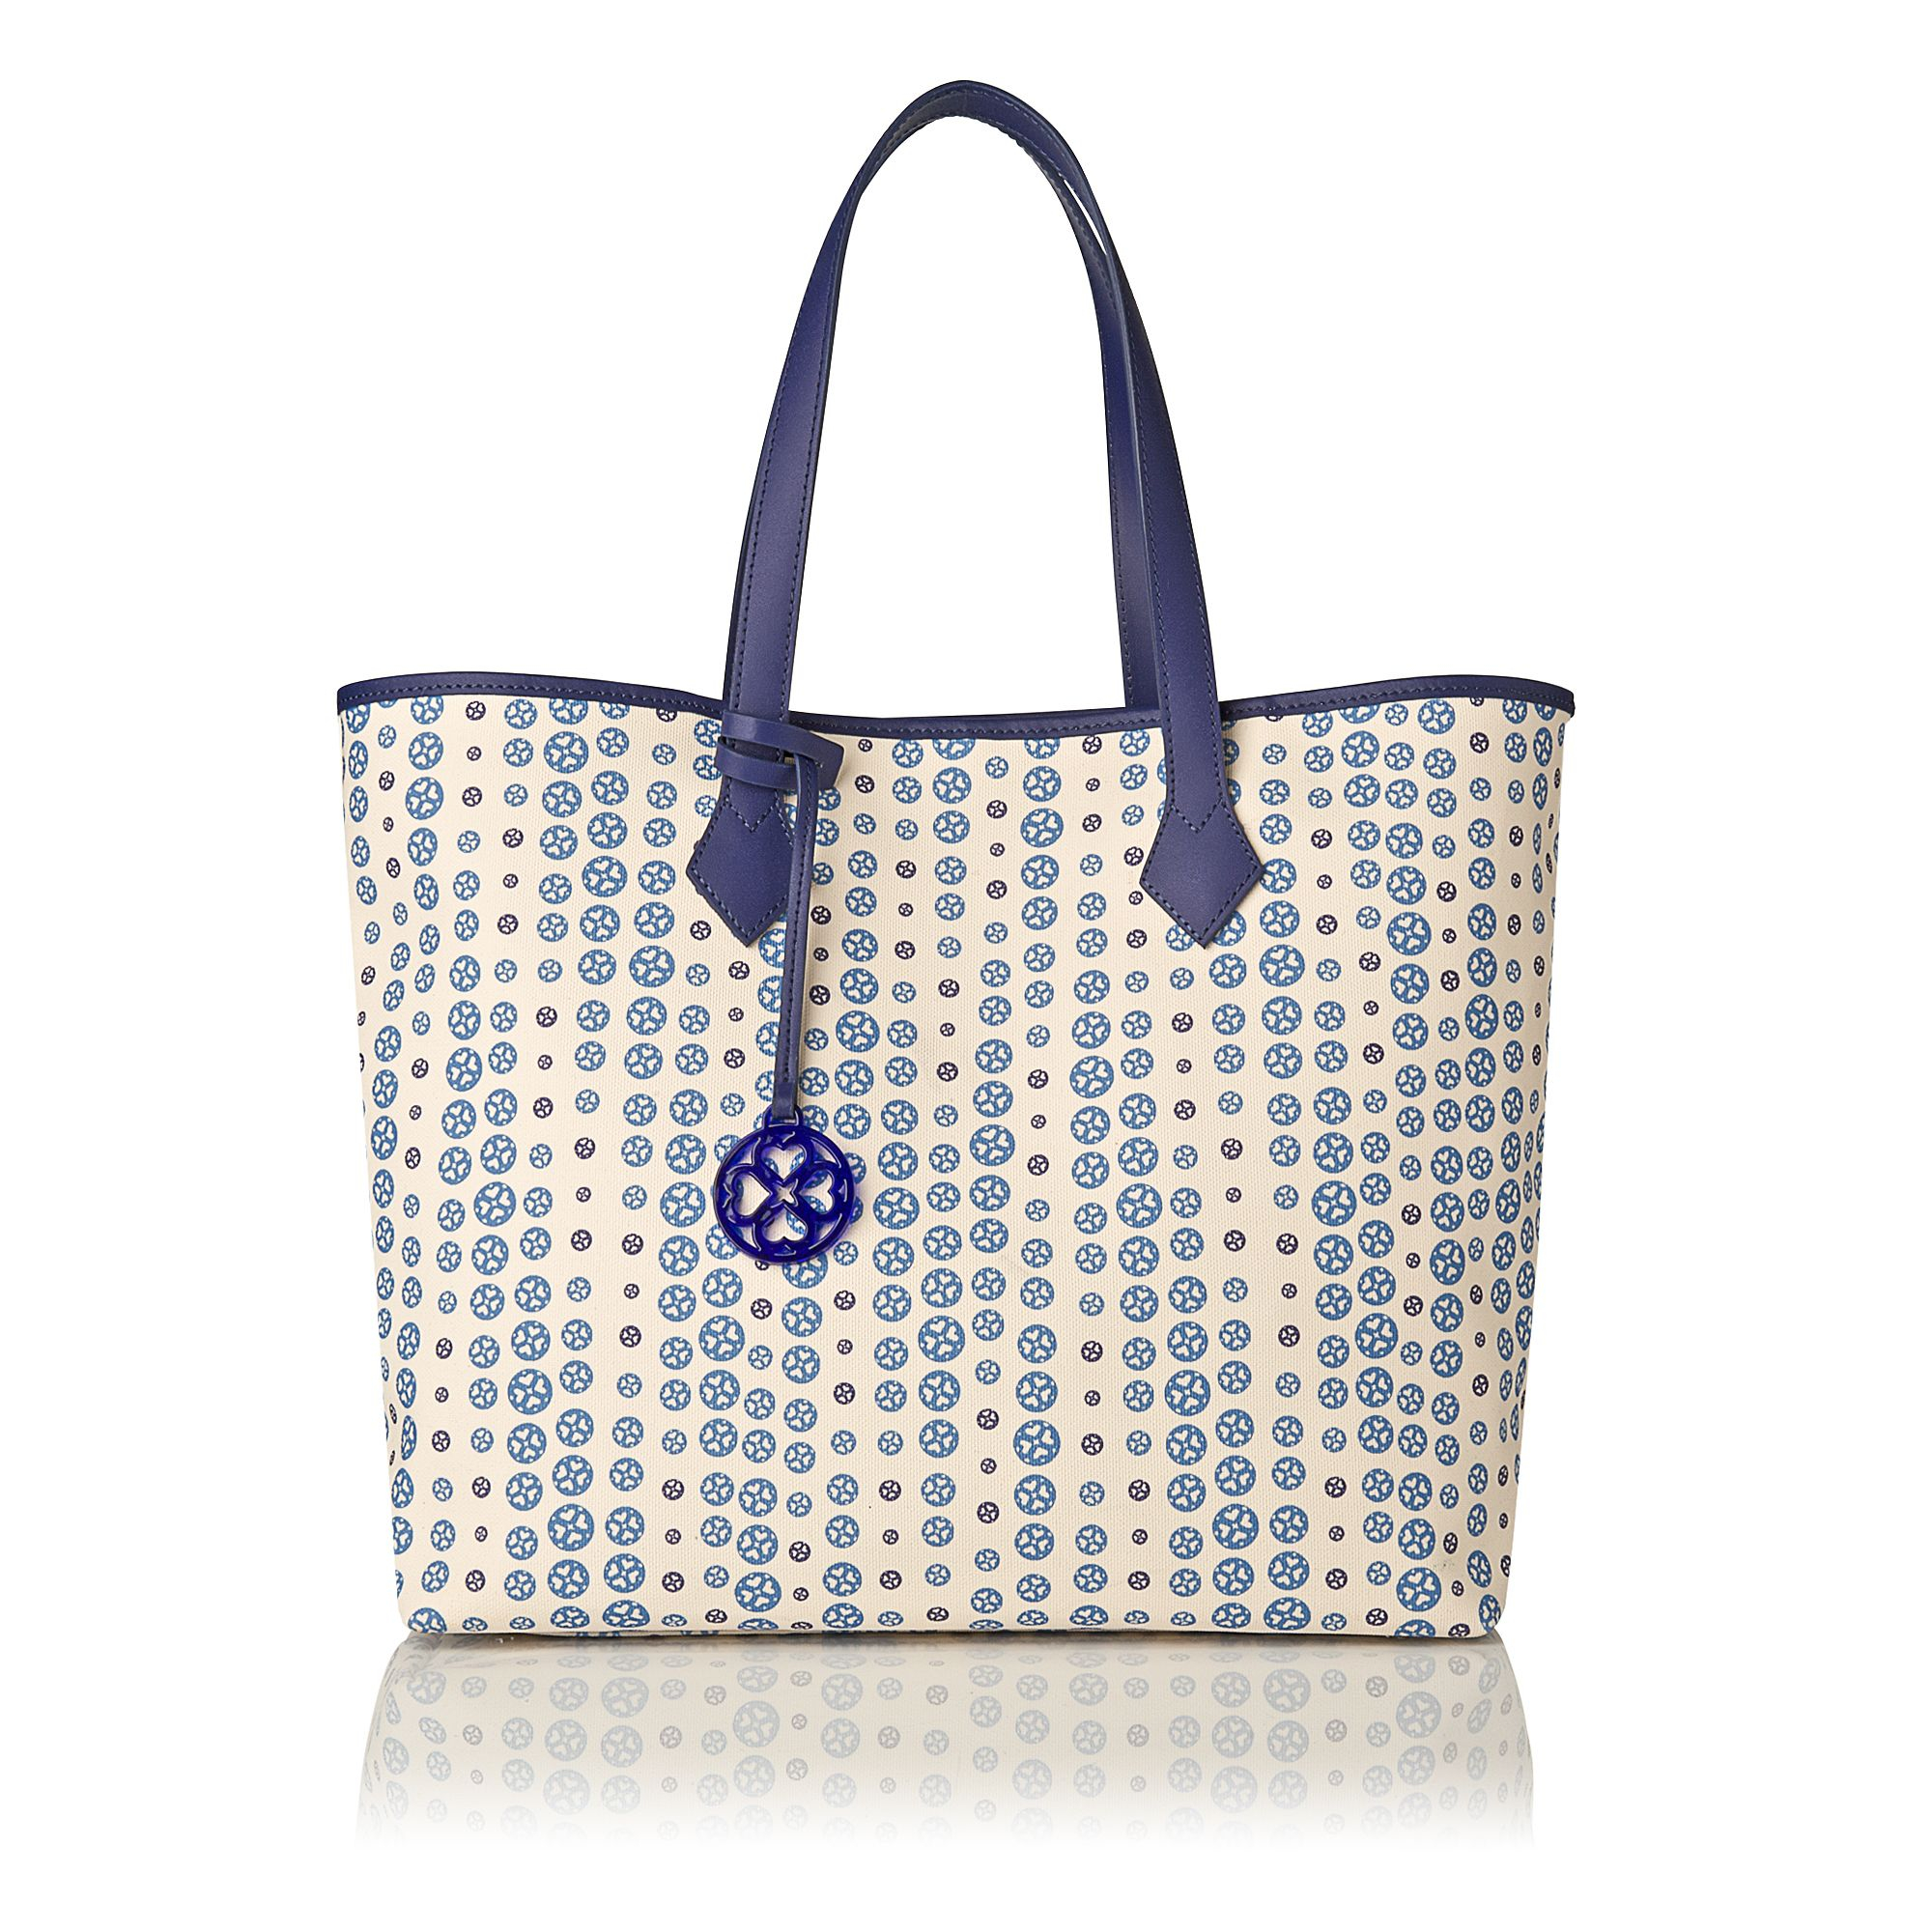 L.K.Bennett Hoxton Large Winged Tote Bag in Blue